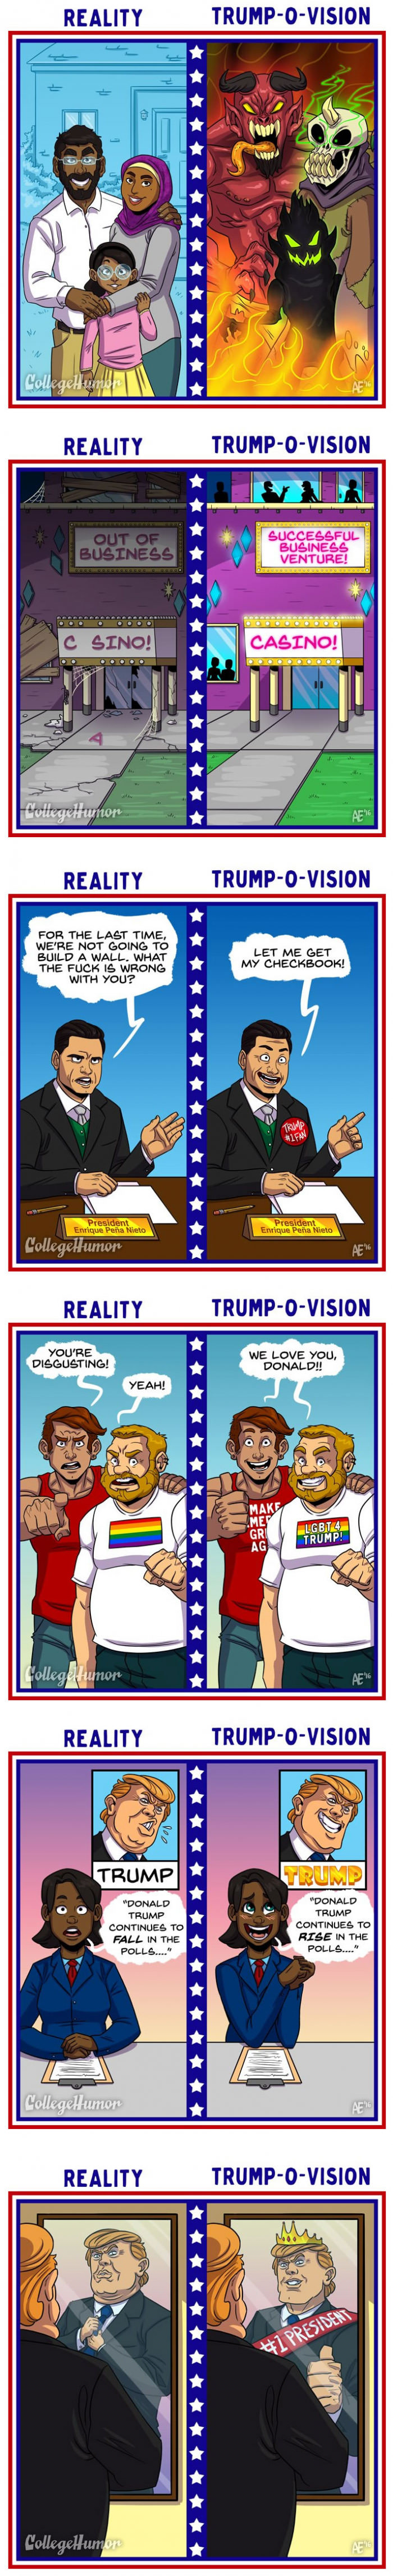 what life looks like to donald trump, trump-o-vision